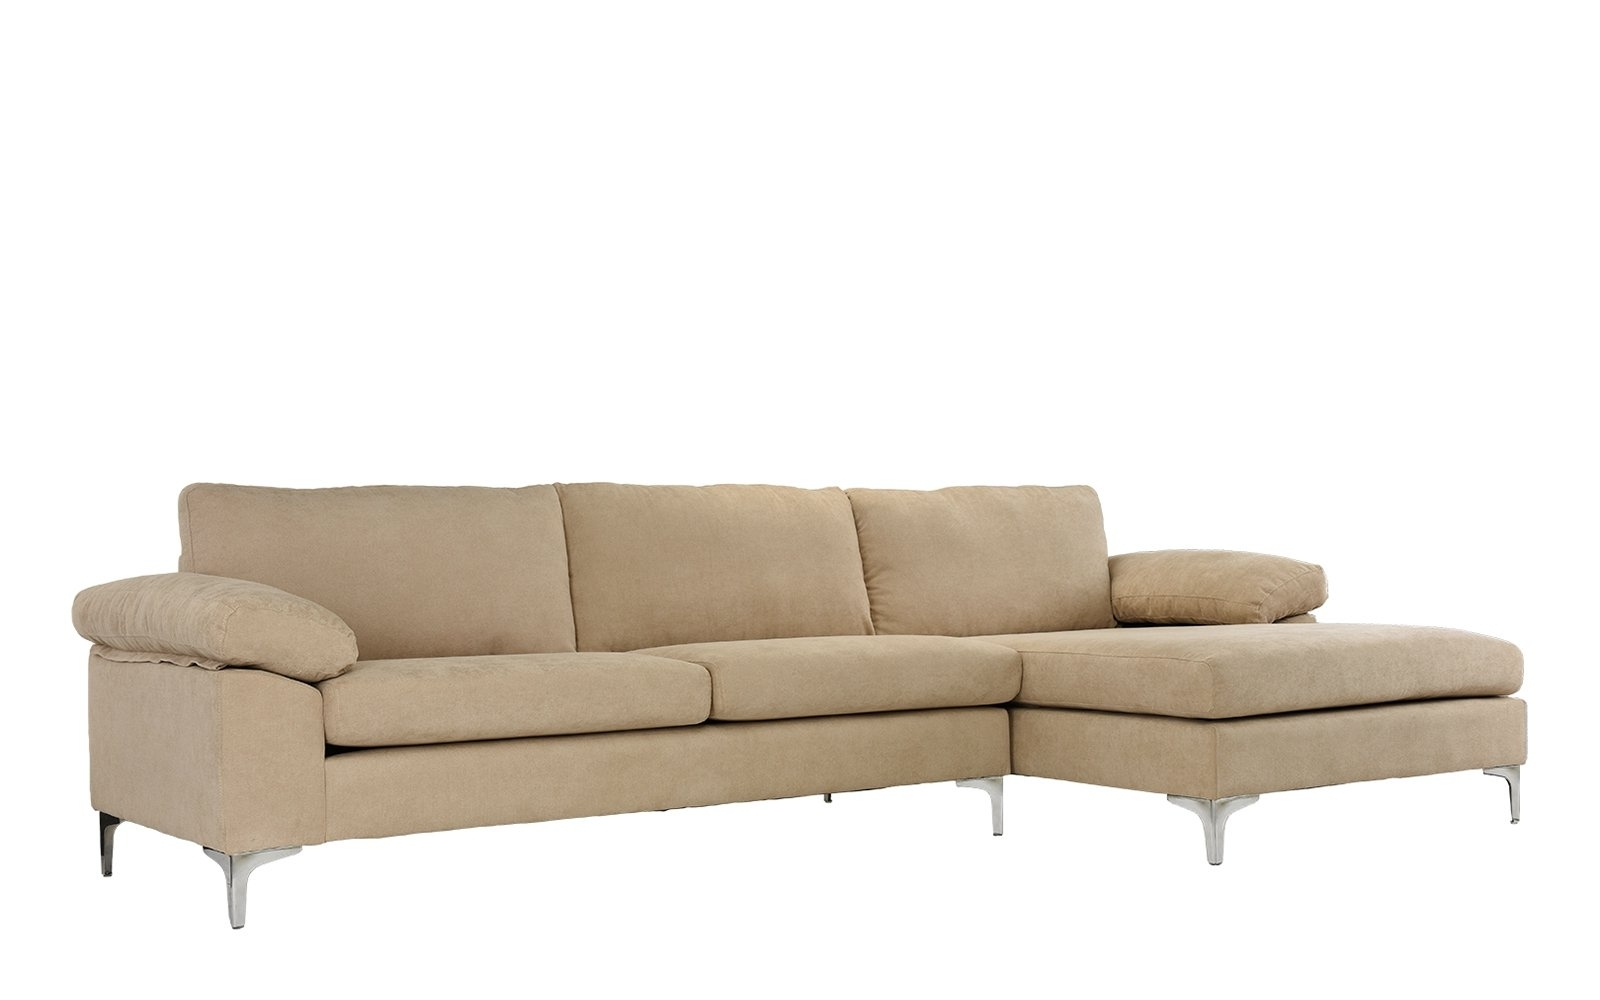 Best Chic Houzz Modern Sectional Sofas #25326 Within Well Known Houzz Sectional Sofas (View 15 of 20)